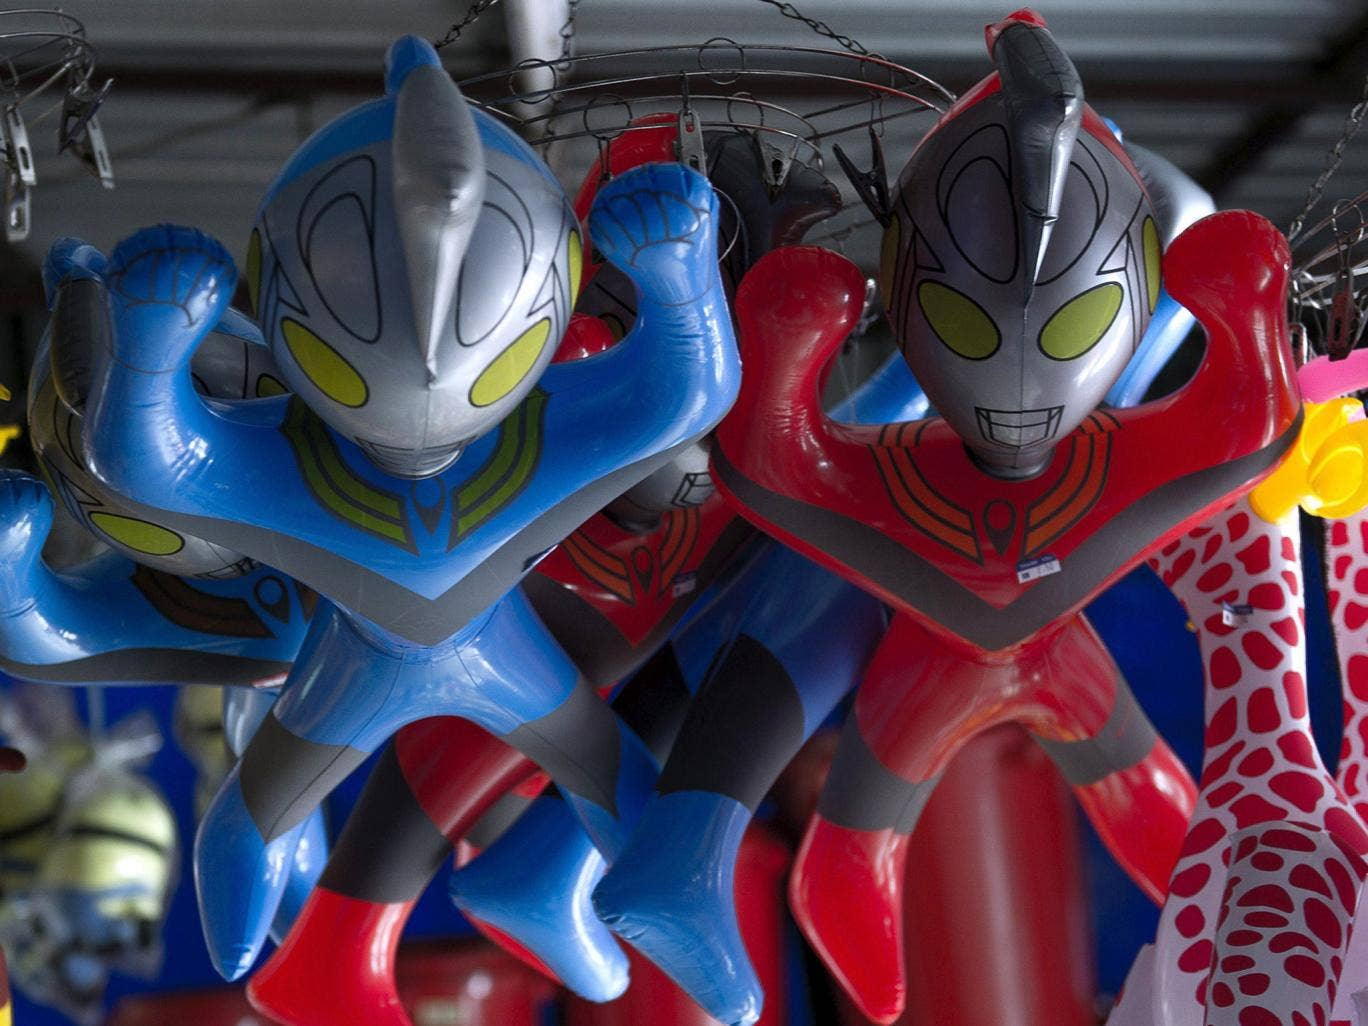 Plastic toys of the popular Japanese superhero Ultraman hang from the ceiling of a shop in Malaysia